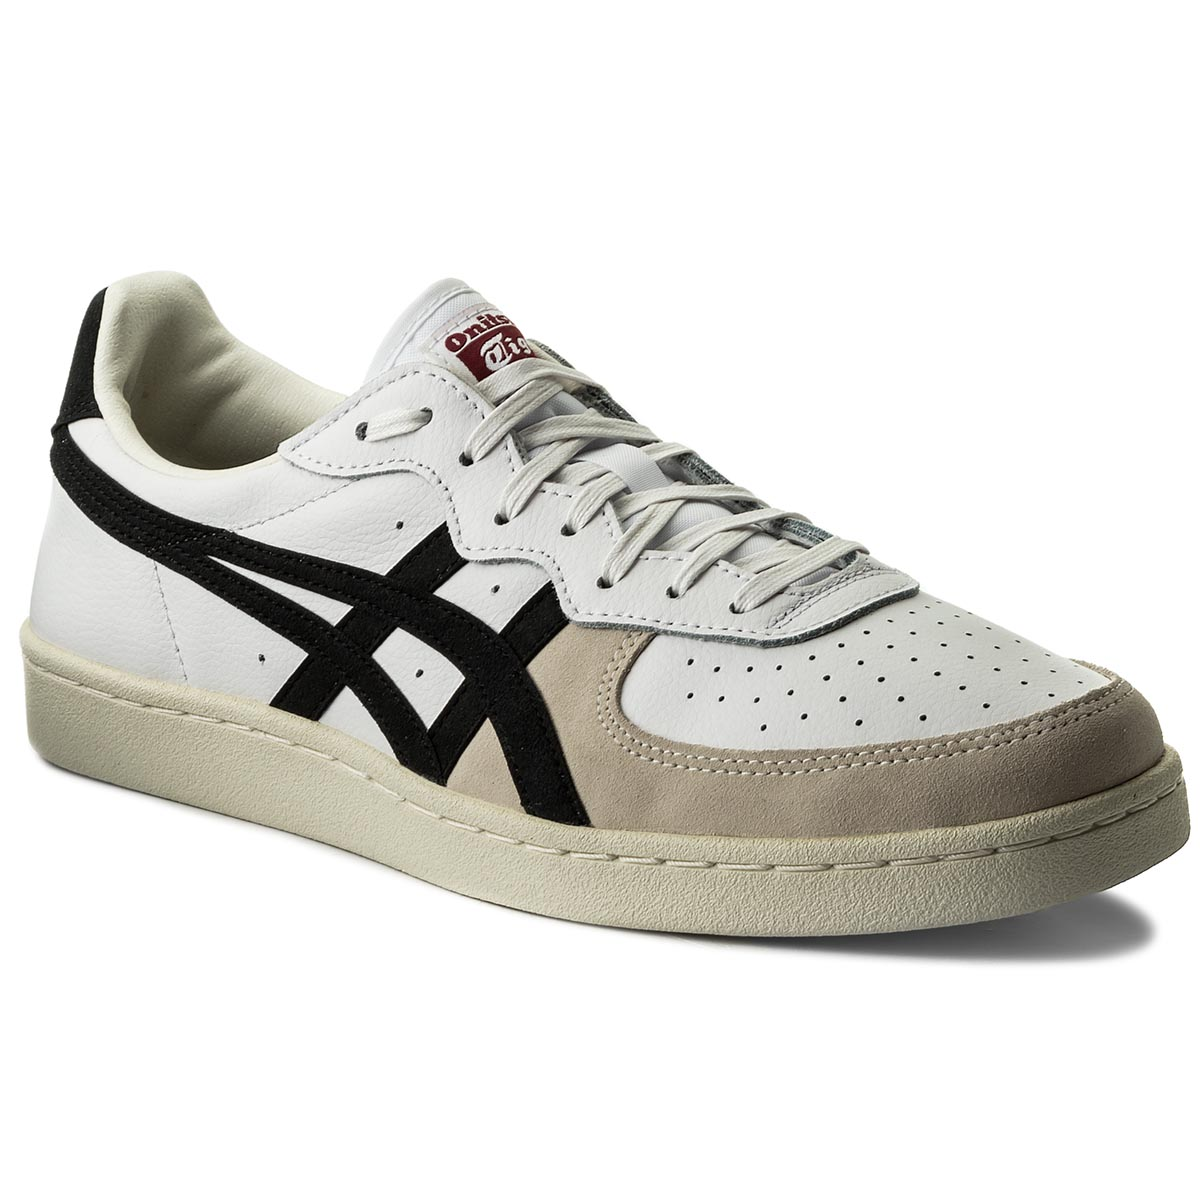 Sneakers ONITSUKA TIGER - Gsm D5K2Y White/Black 0190